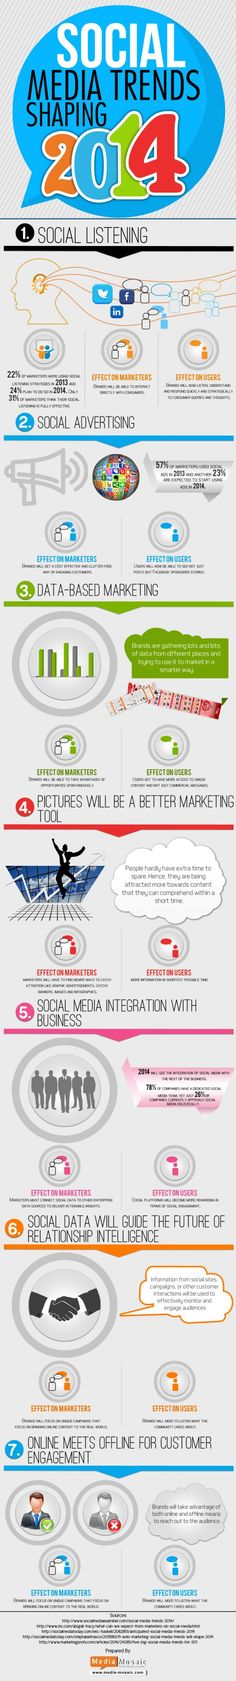 Social Media Shaping Trends 2014 Infographic - SiteProNews